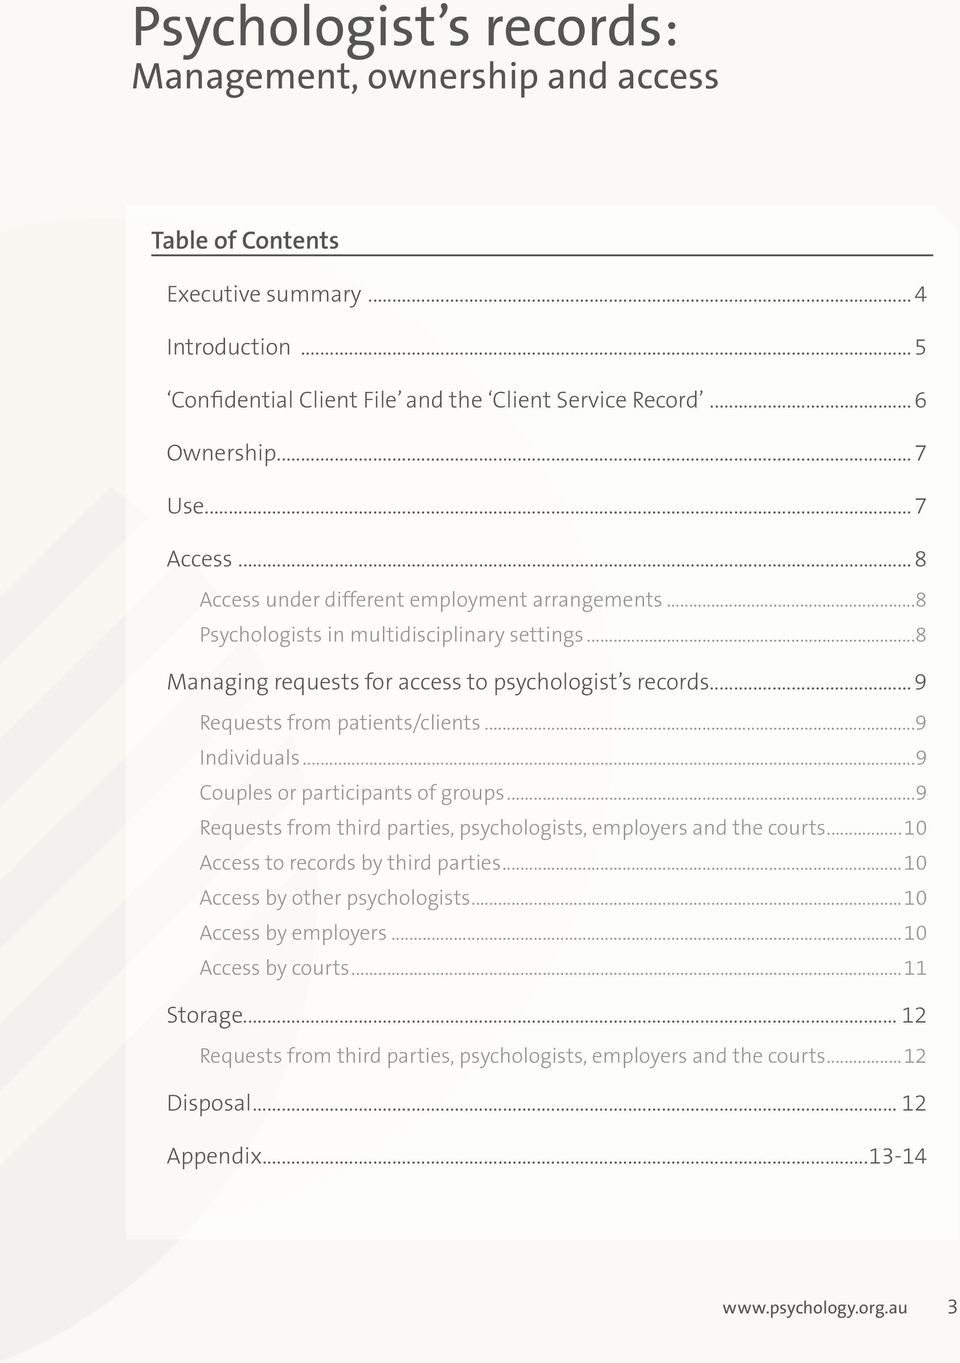 .. 9 Requests from patients/clients...9 Individuals...9 Couples or participants of groups...9 Requests from third parties, psychologists, employers and the courts.